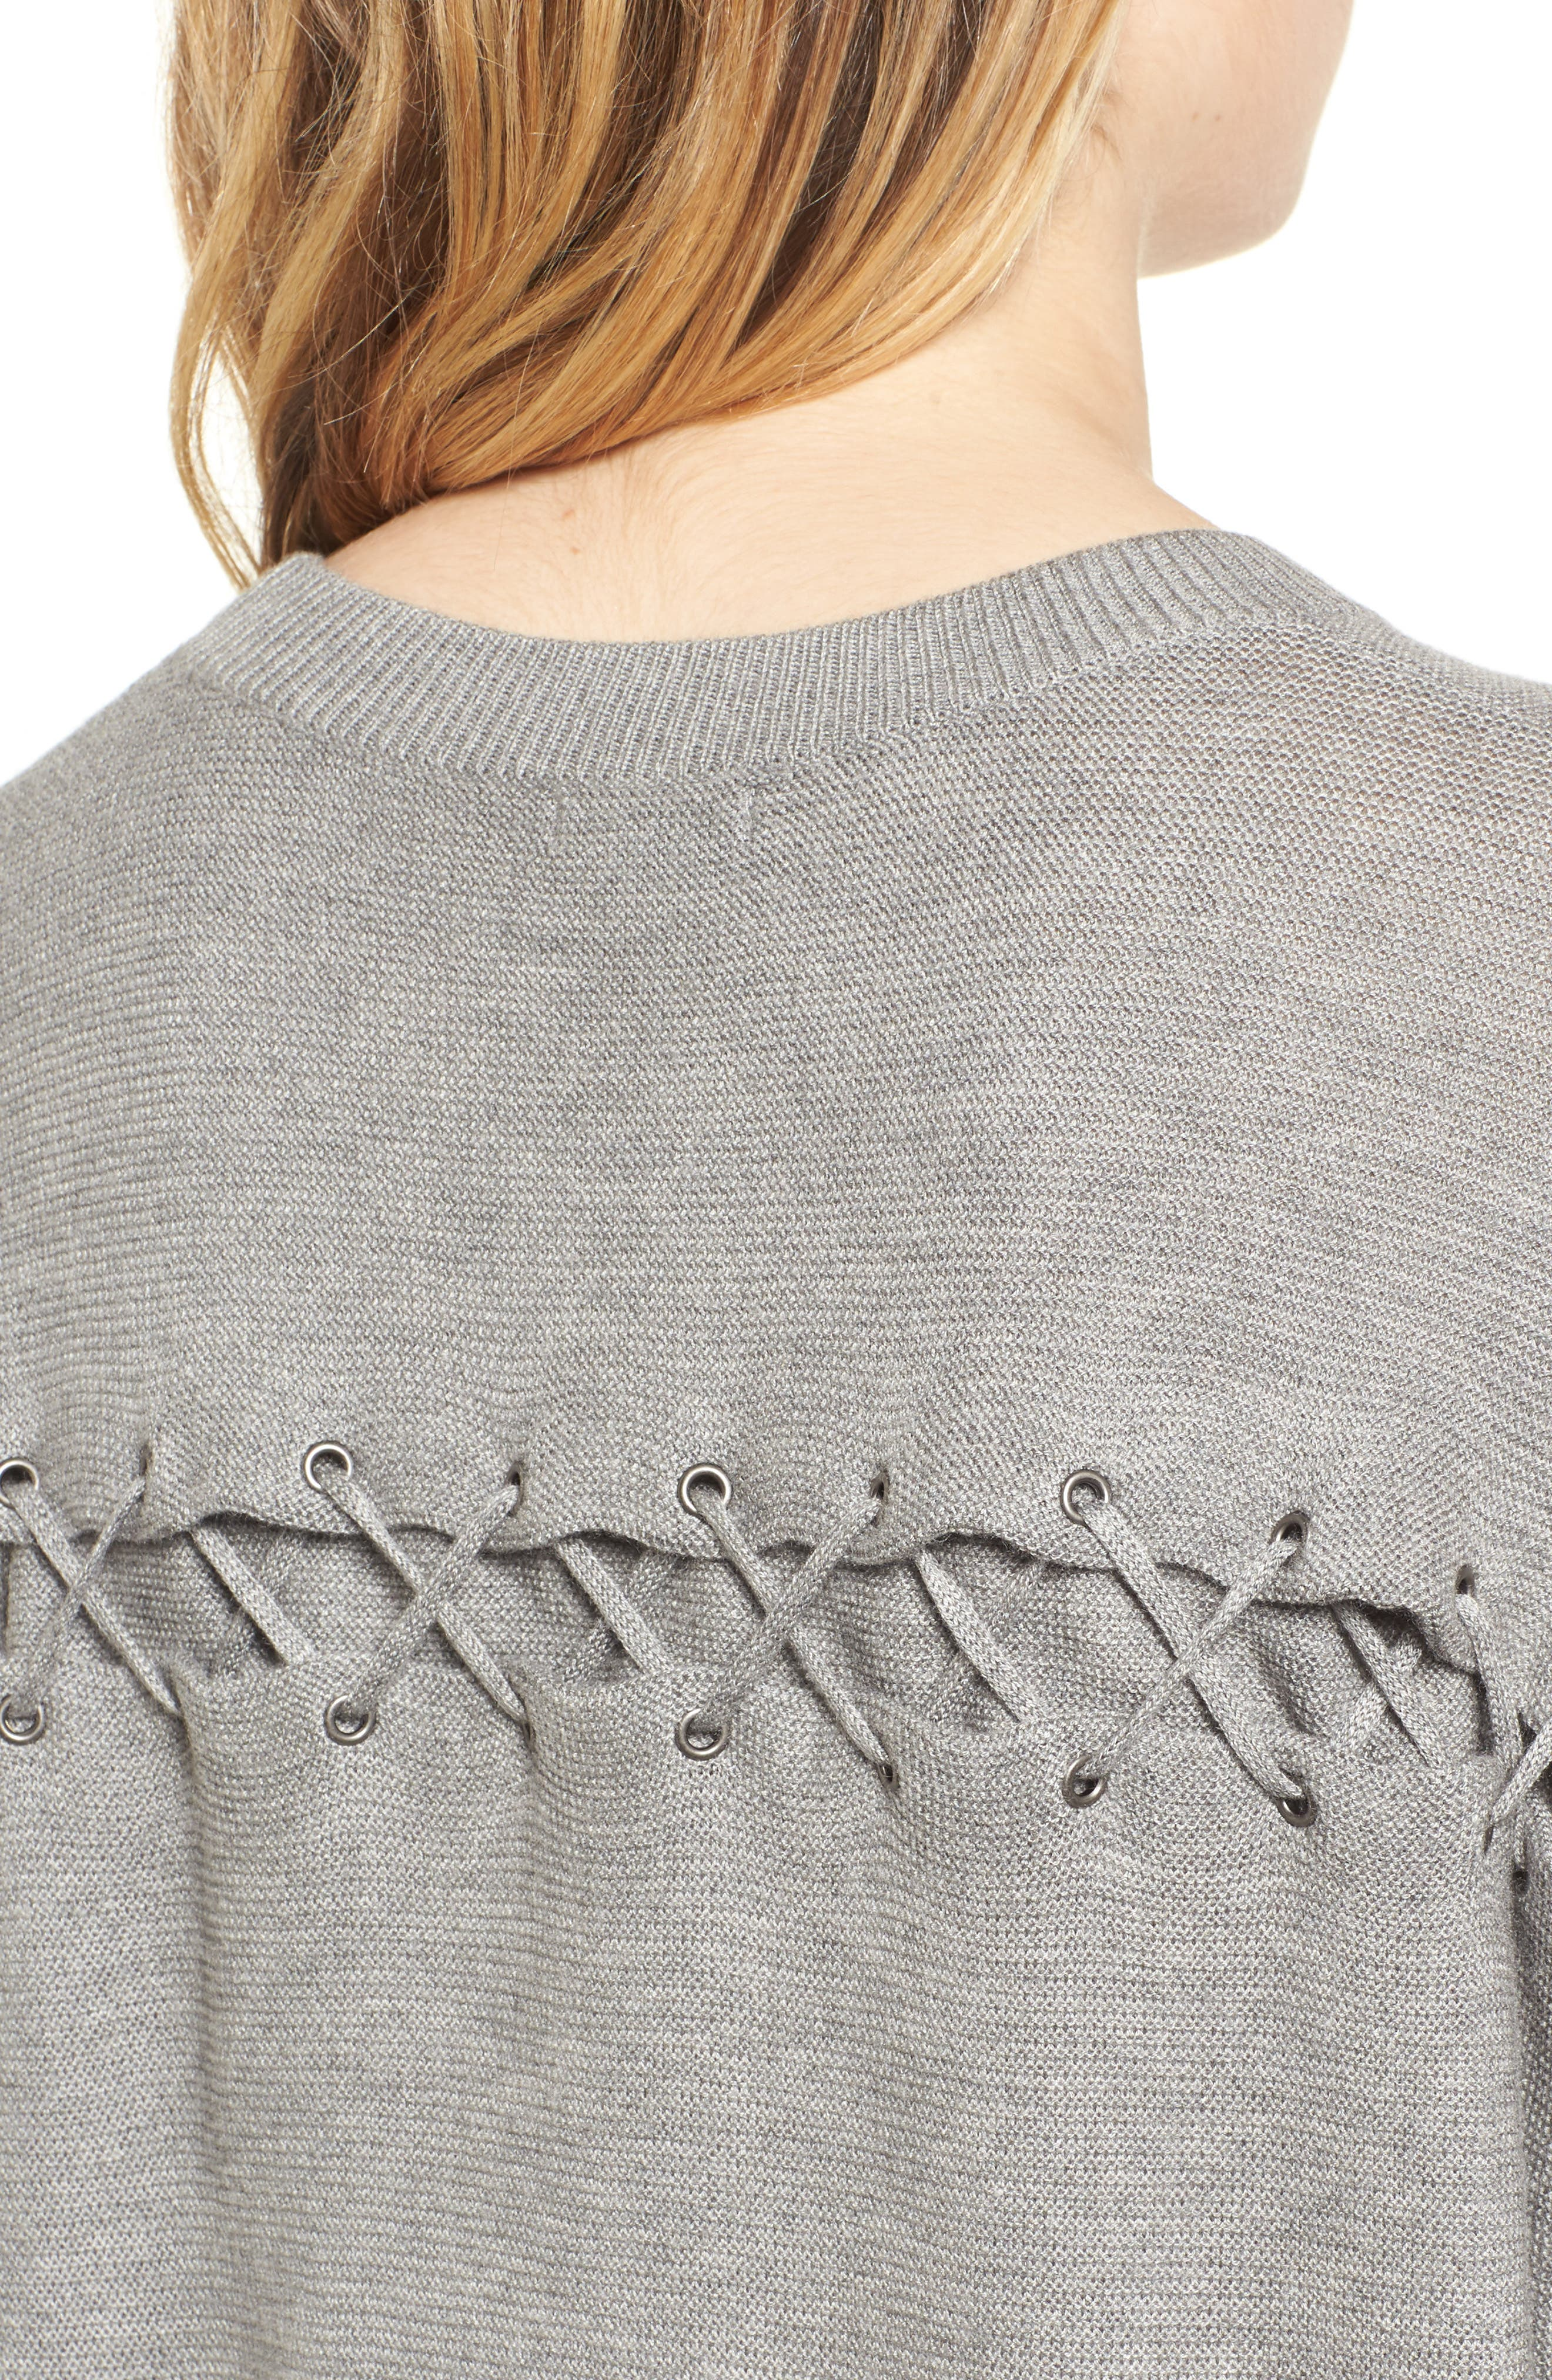 Laced Back Sweater,                             Alternate thumbnail 4, color,                             Slate